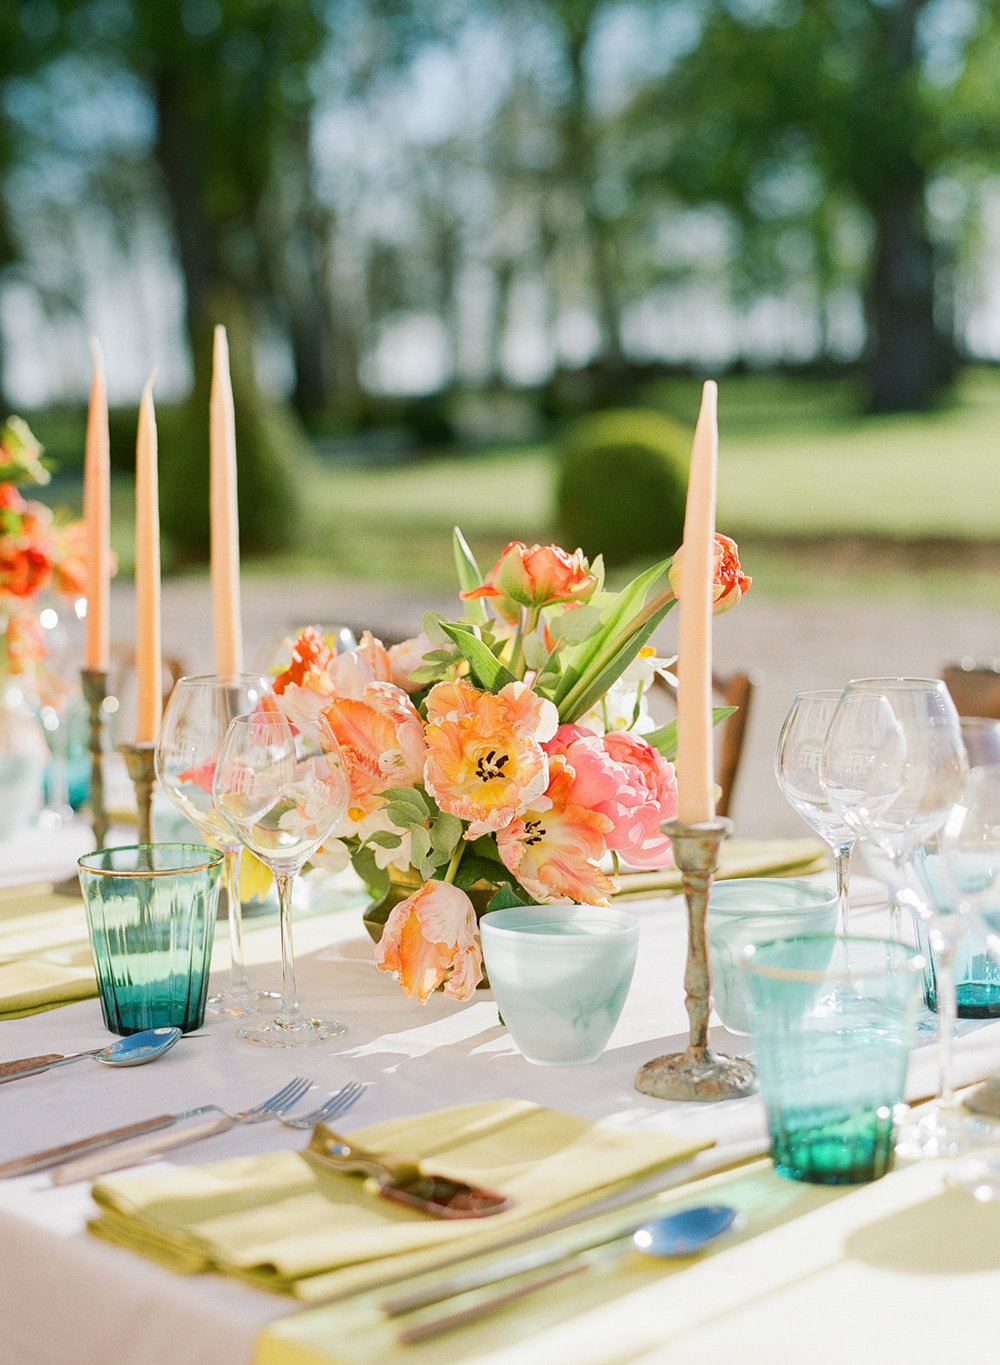 Peach and turquoise florals and tabletop accents; Sylvie Gil Photography